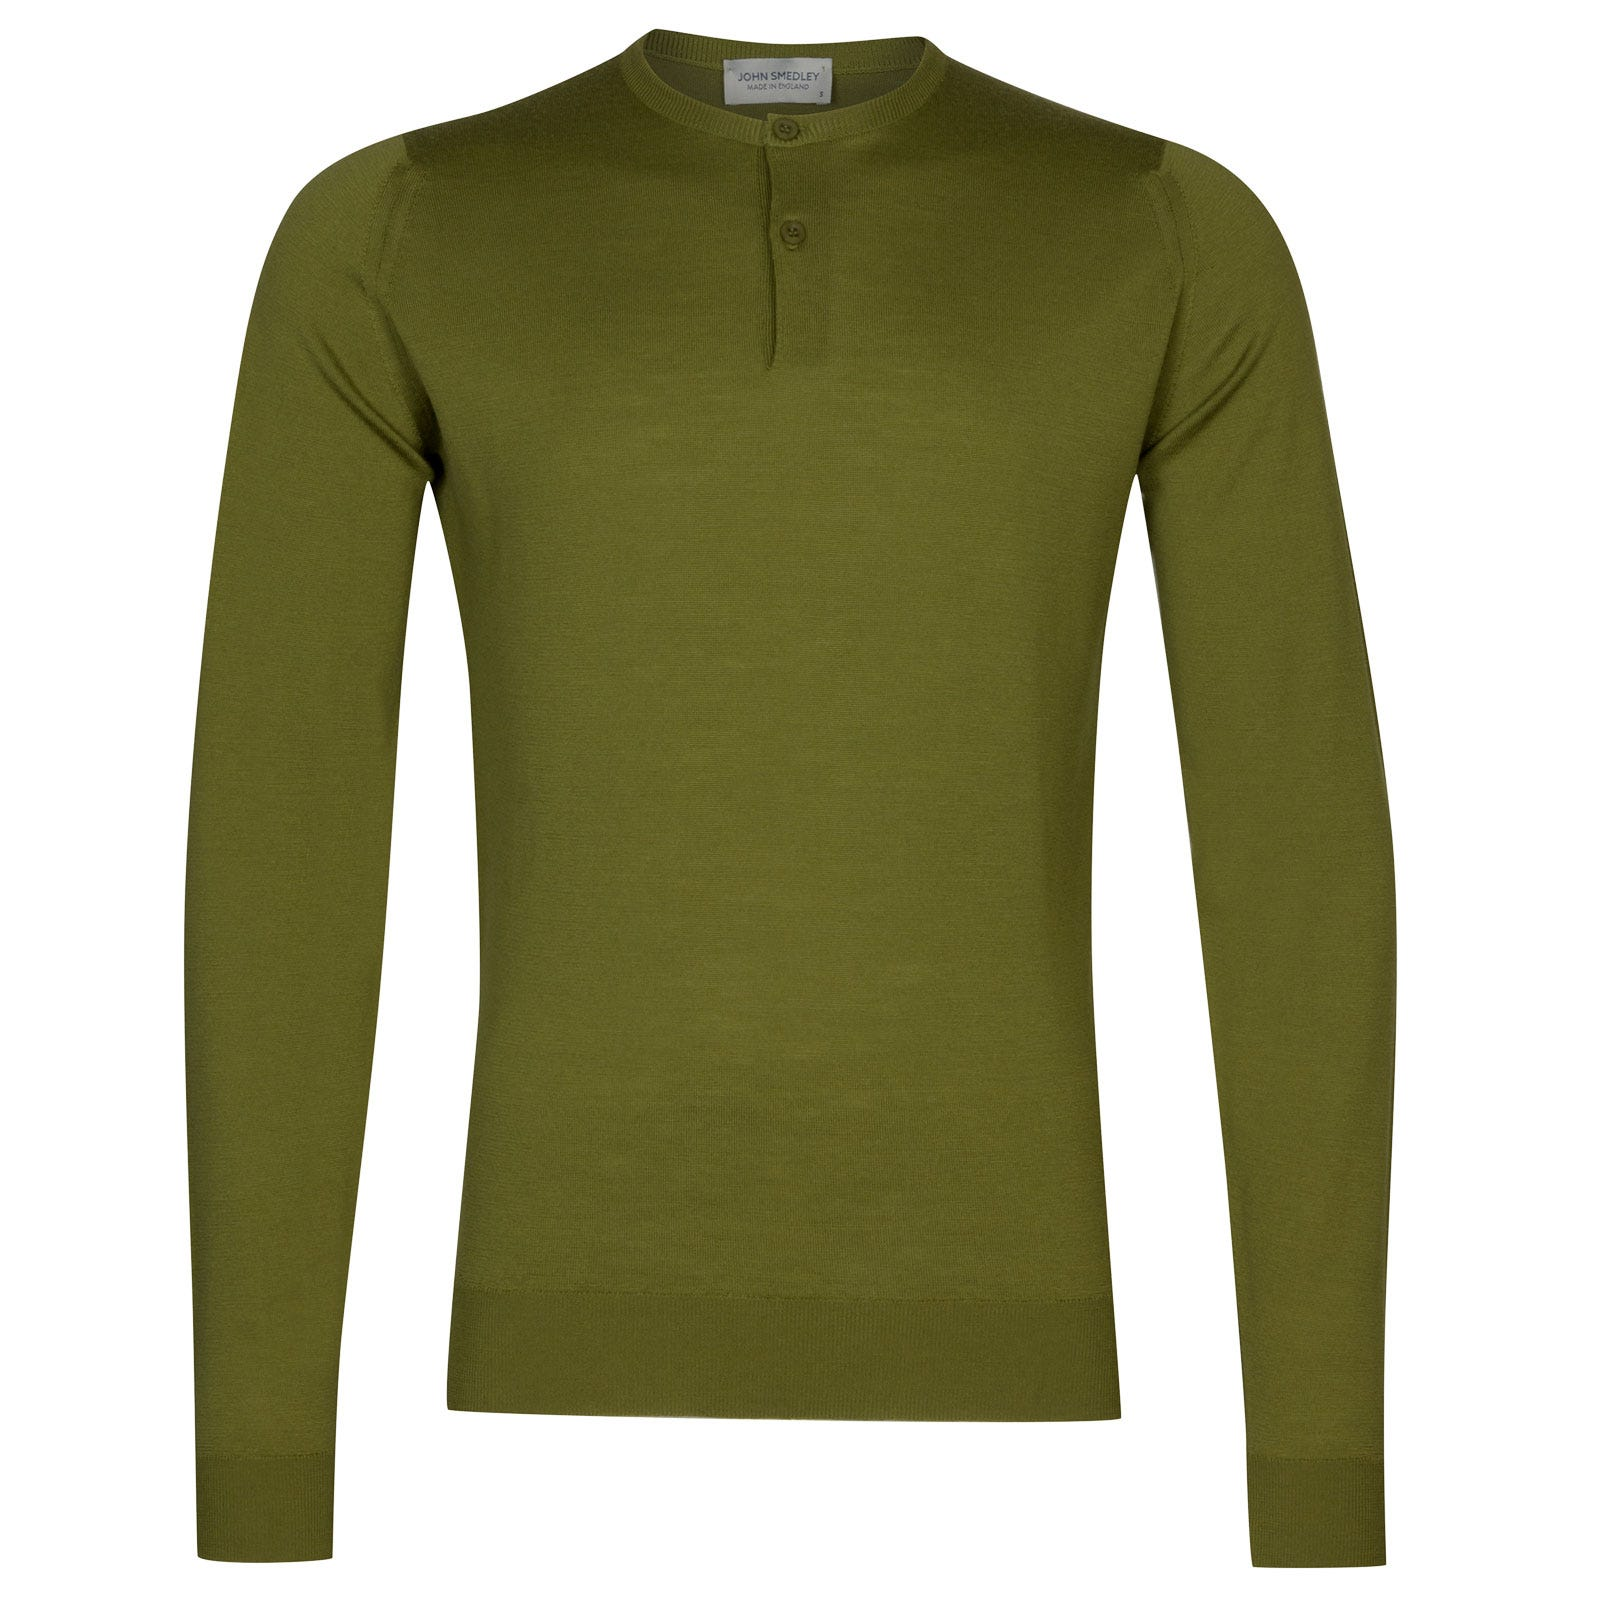 John Smedley russet Merino Wool Henley Shirt in Lumsdale Green-L